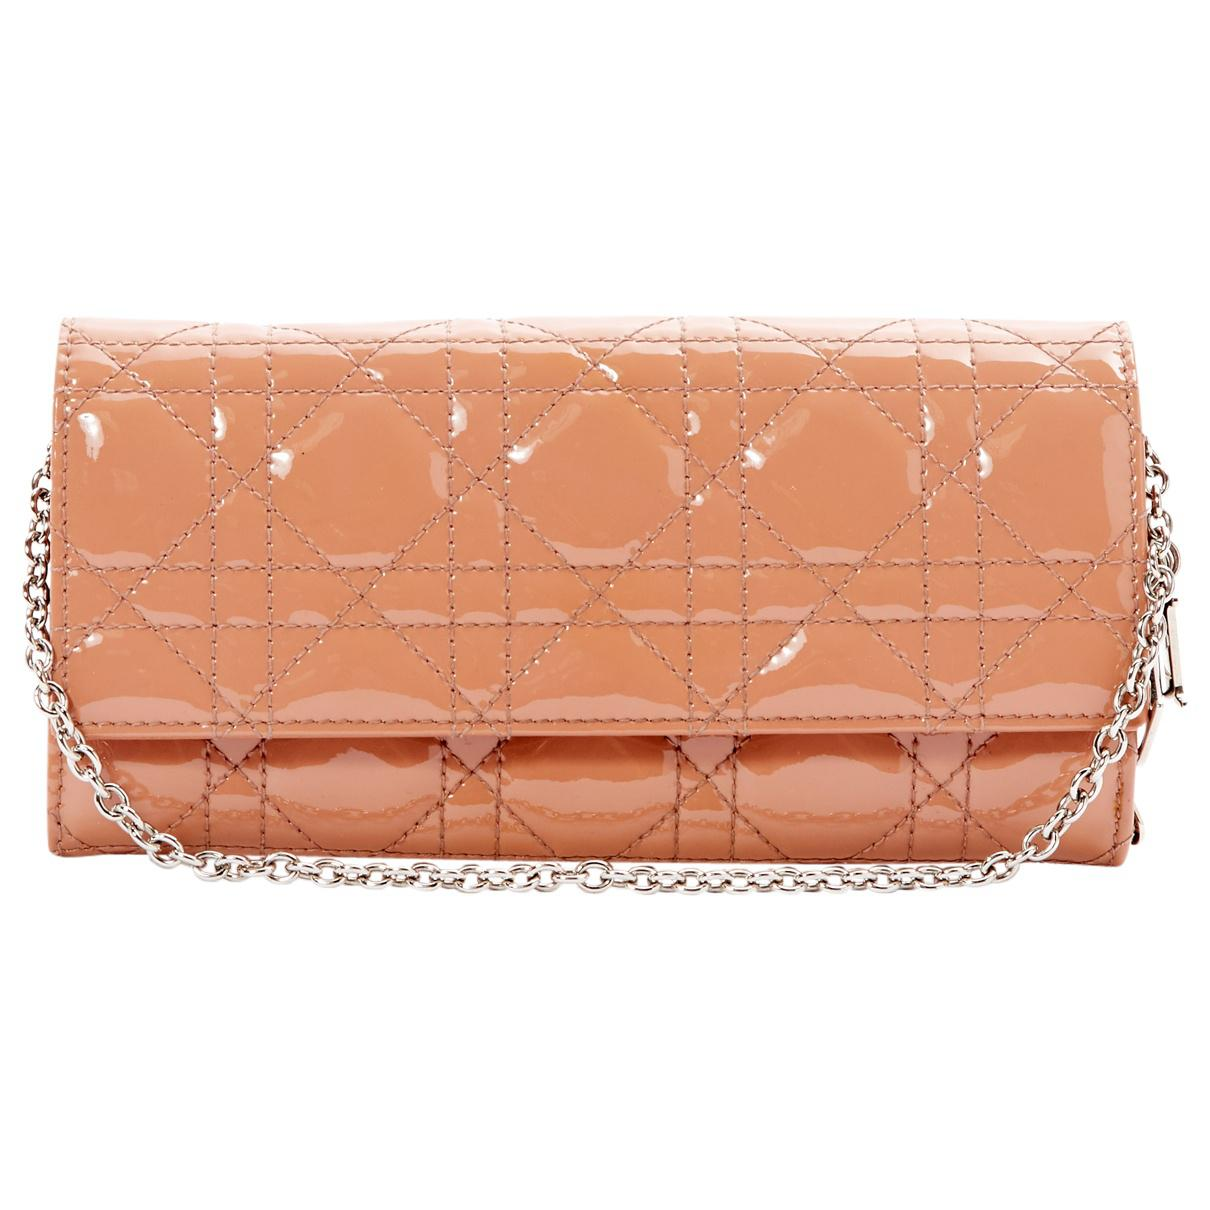 Dior Pre-owned - Patent leather clutch bag ST5uoHt